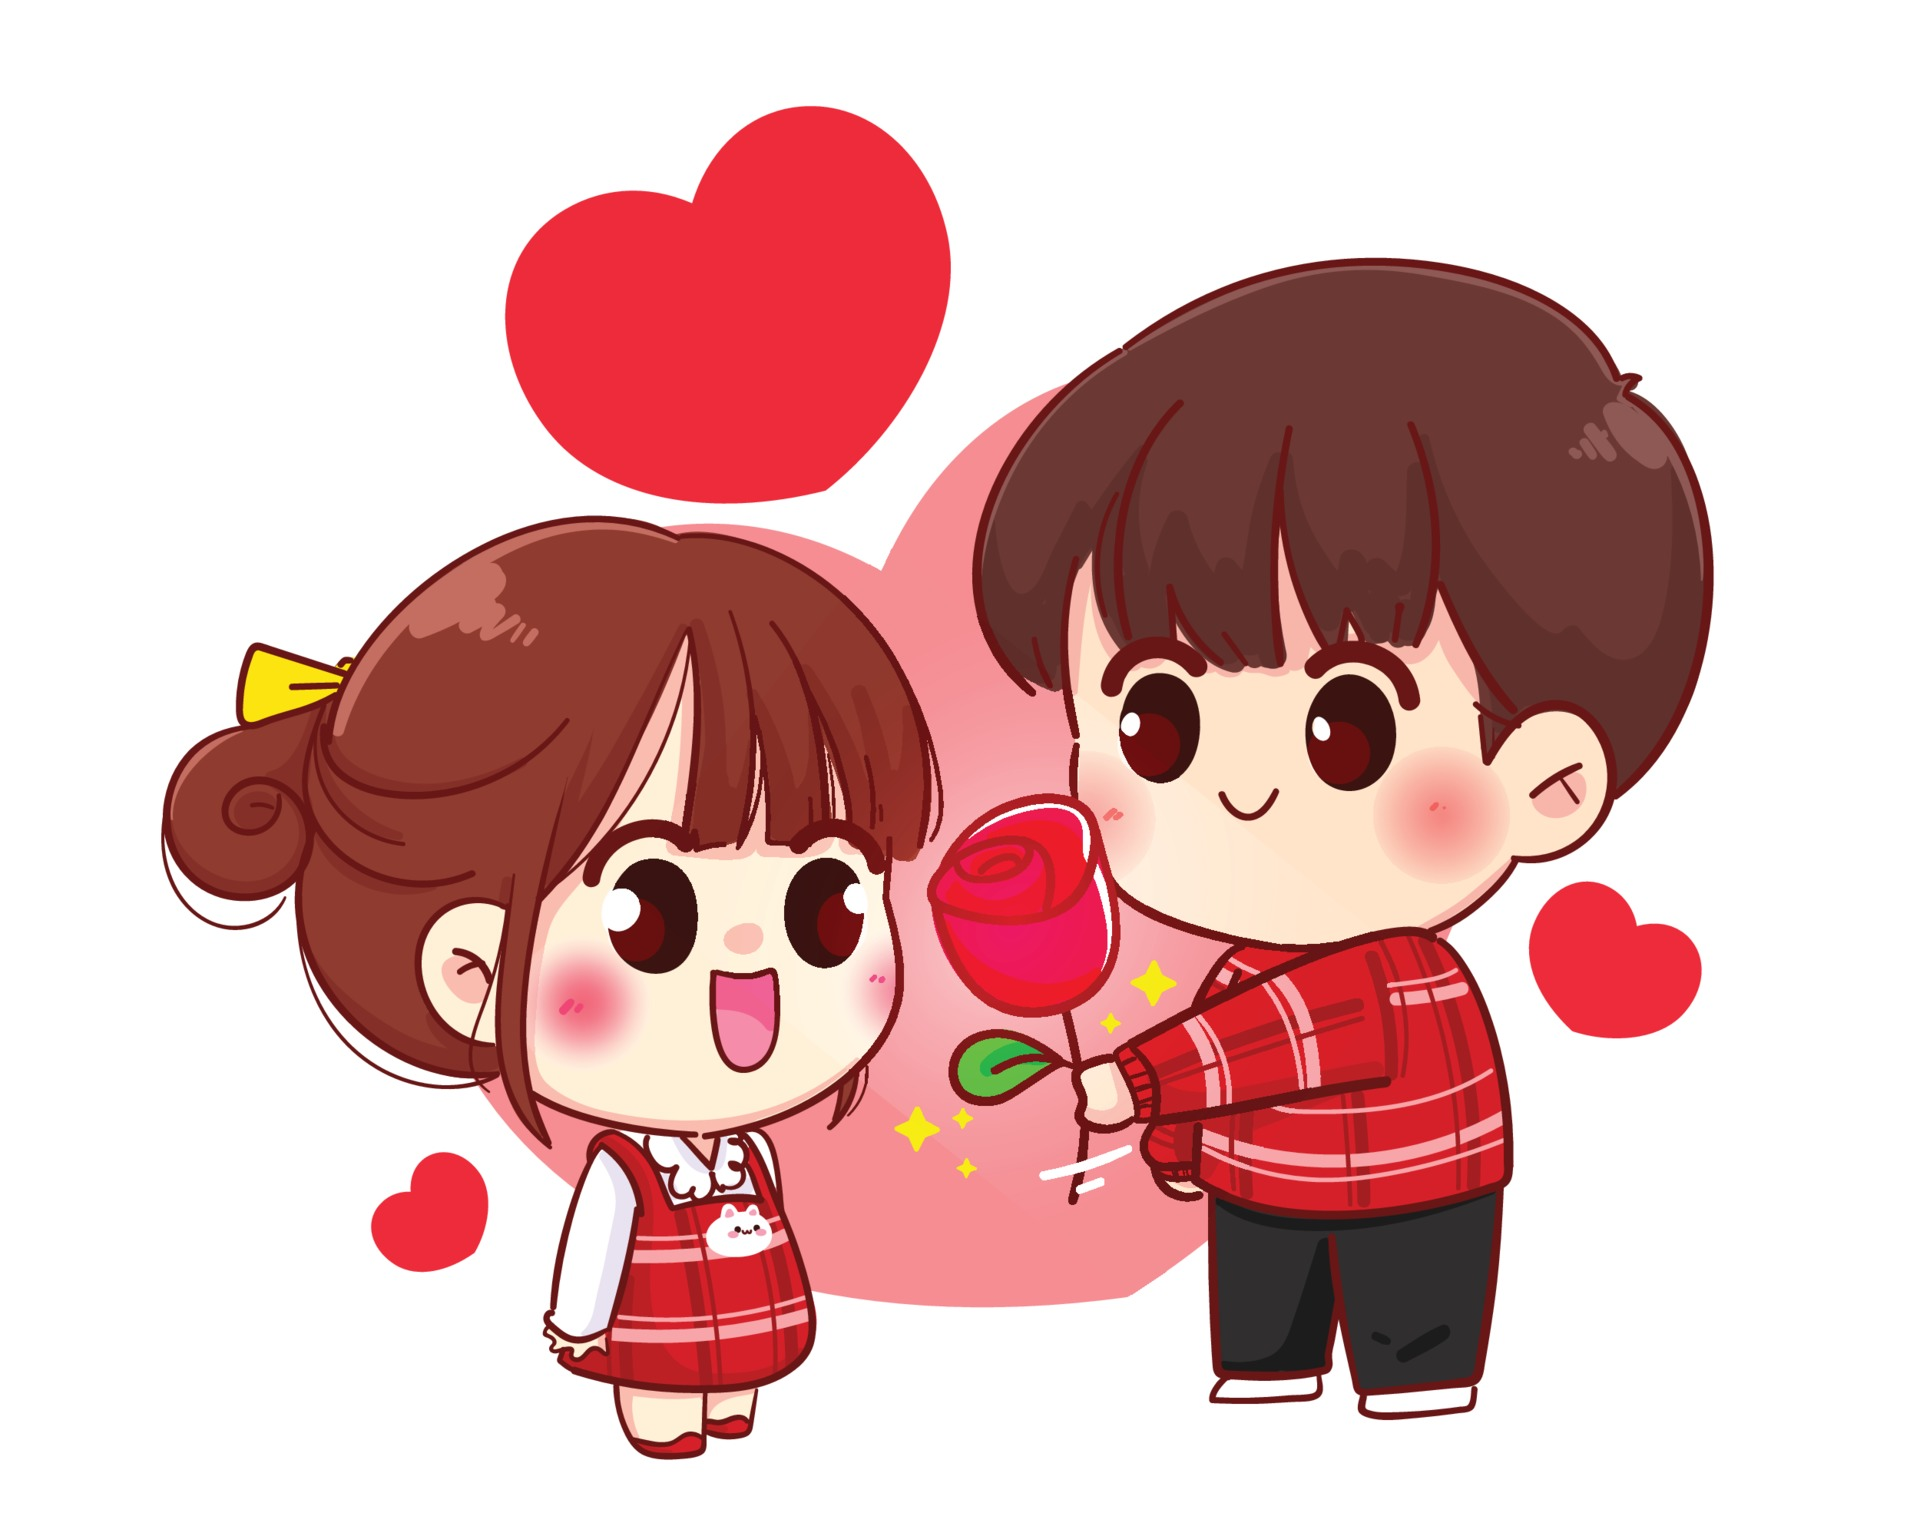 Boy Gives Flower To Girl Cute Couple Happy Valentine Cartoon Character Illustration 1936448 Vector Art At Vecteezy